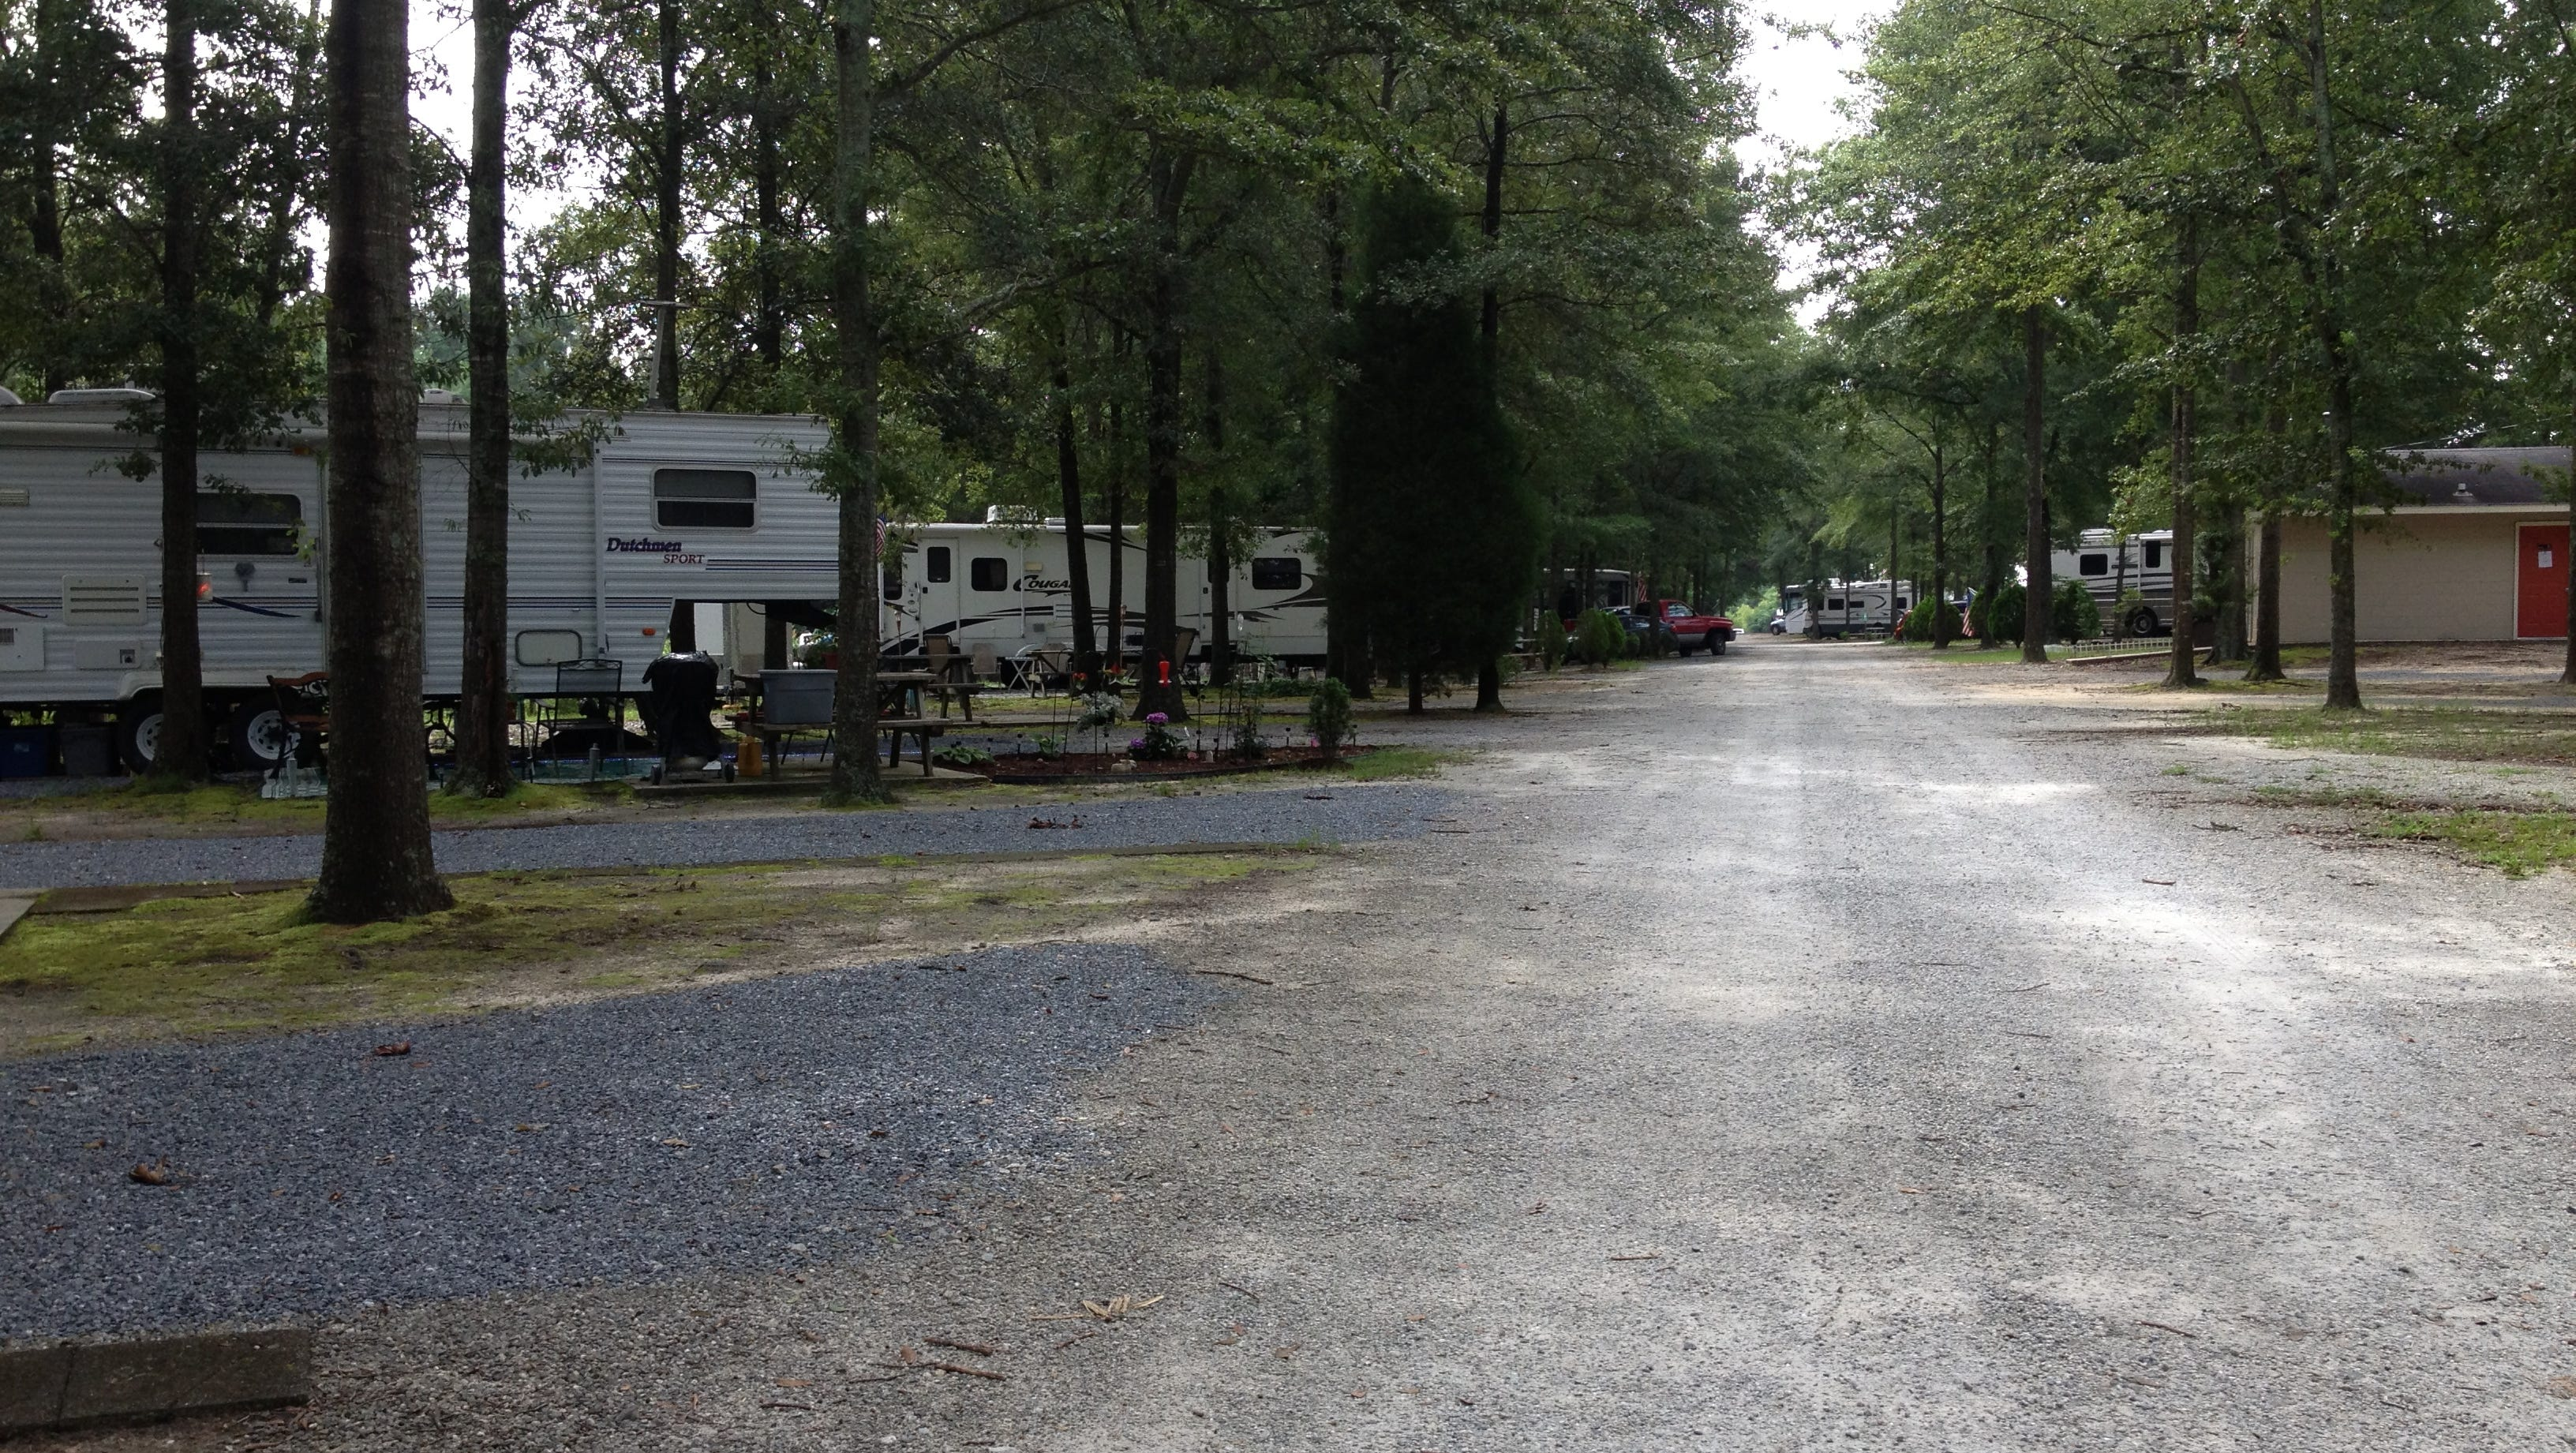 The RV park includes short-timers and longer-term residents. Dozens of vehicles can pull in, plug in and stay for a night, a week or months.